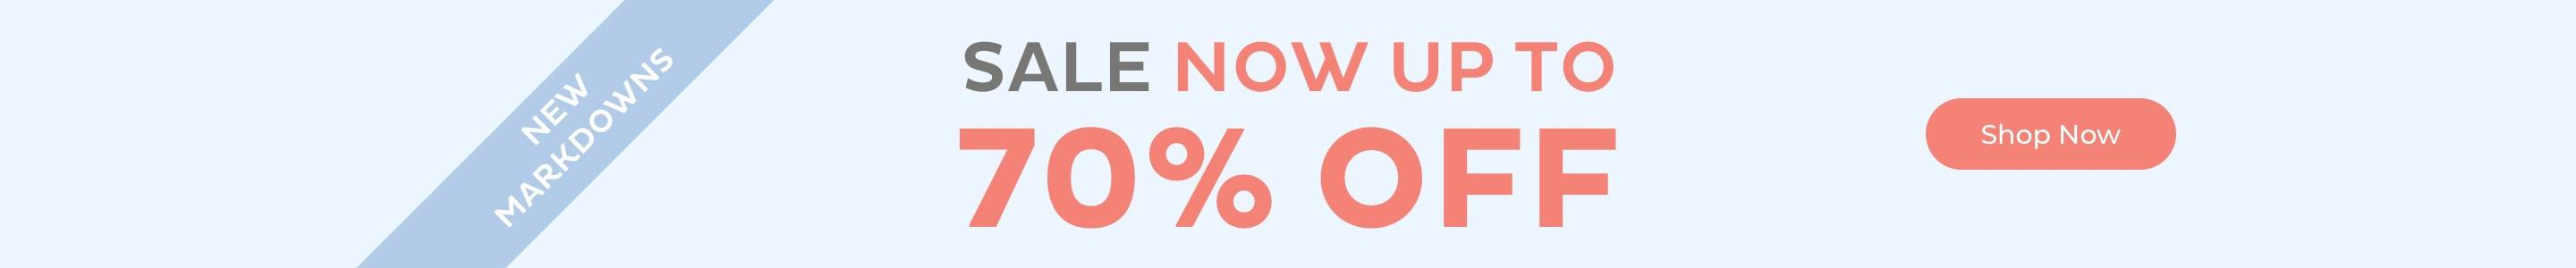 Sale Now Up to 70% Off